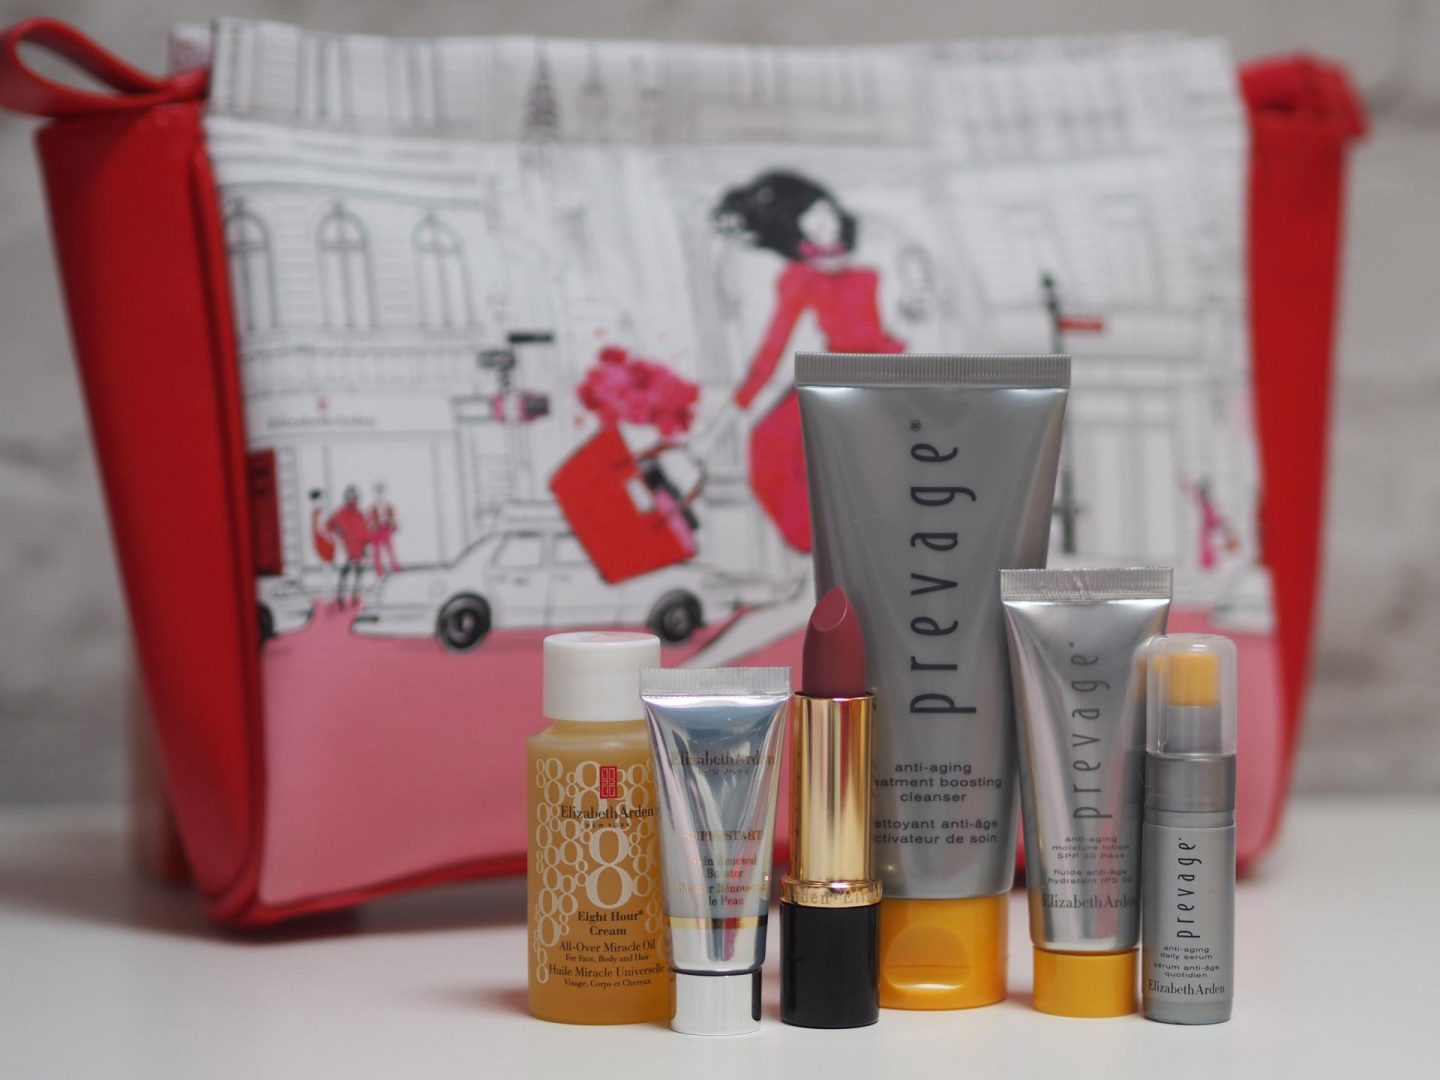 elizabeth-arden-free-gift-with-purchase-at-house-of-fraser-rachel-nicole-uk-blogger-4